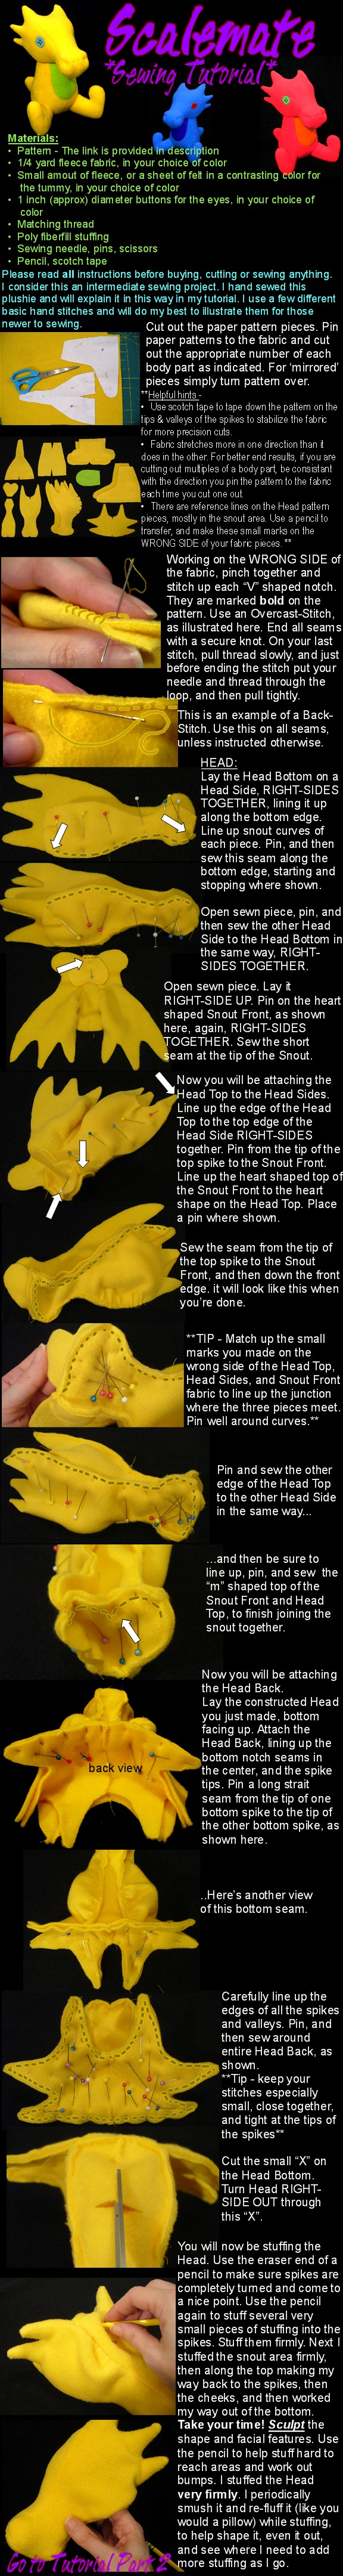 Scalemate sewing tutorial Part 1